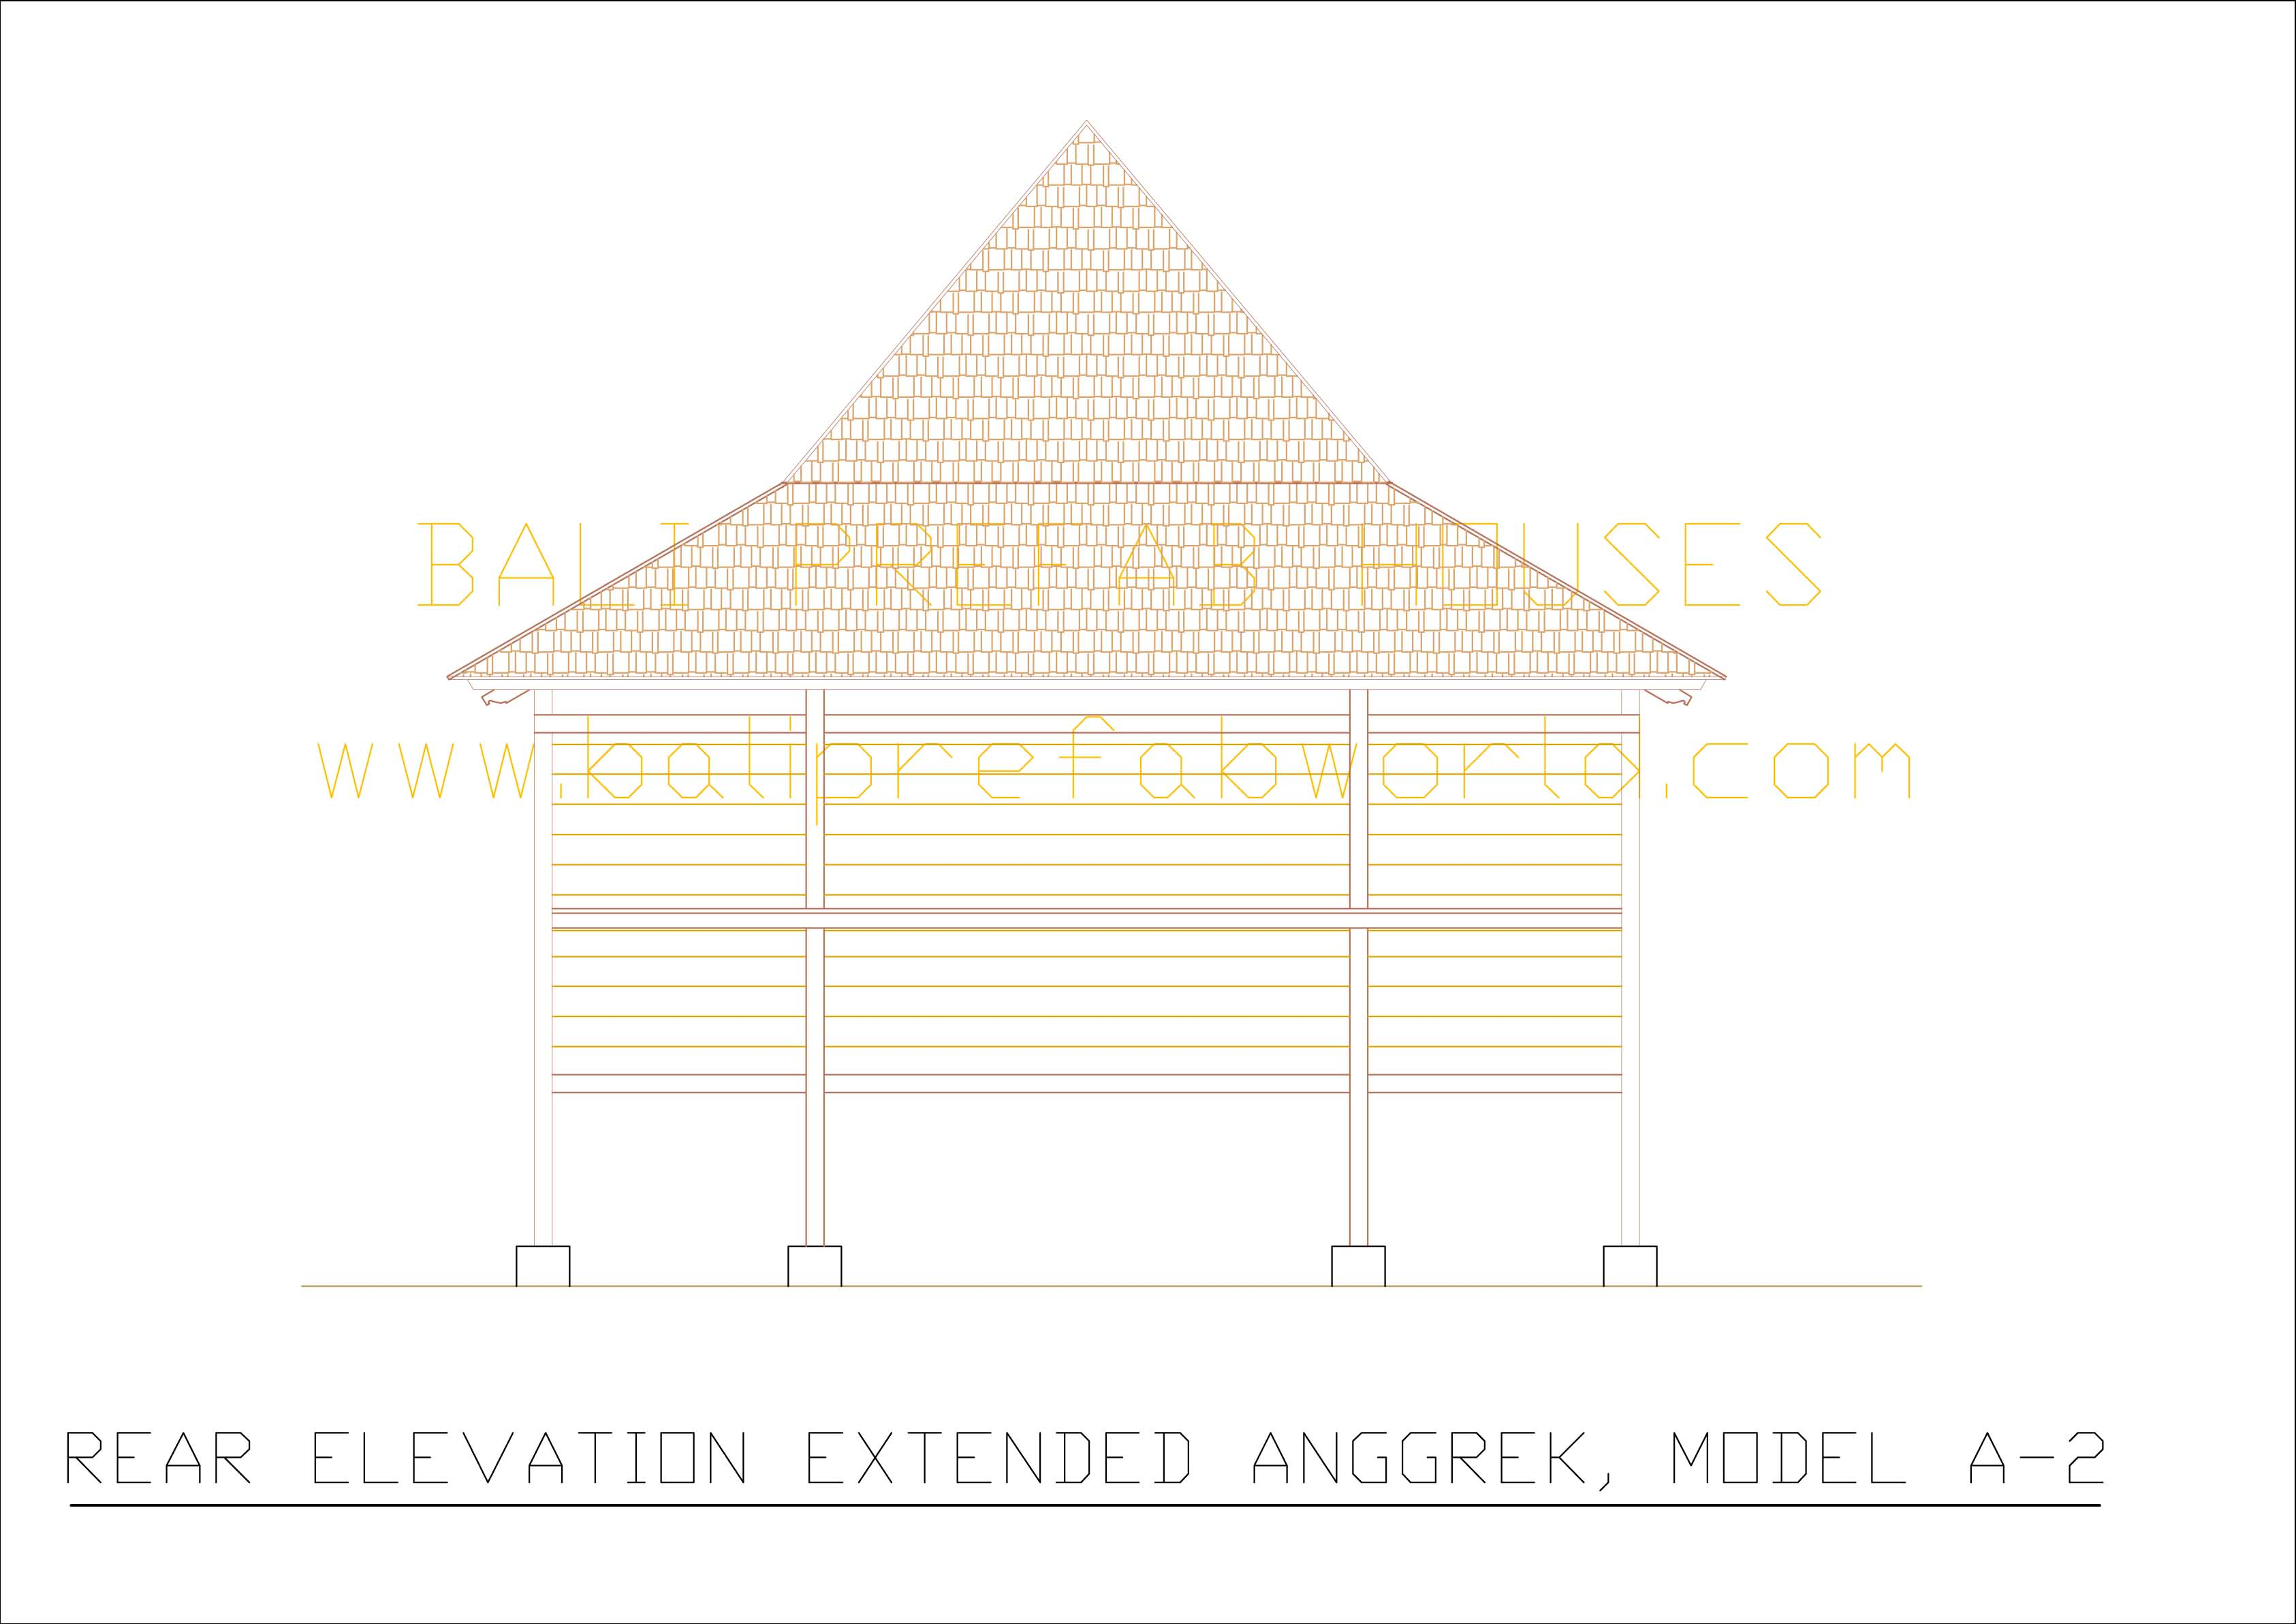 Extended Anggrek rear elevation